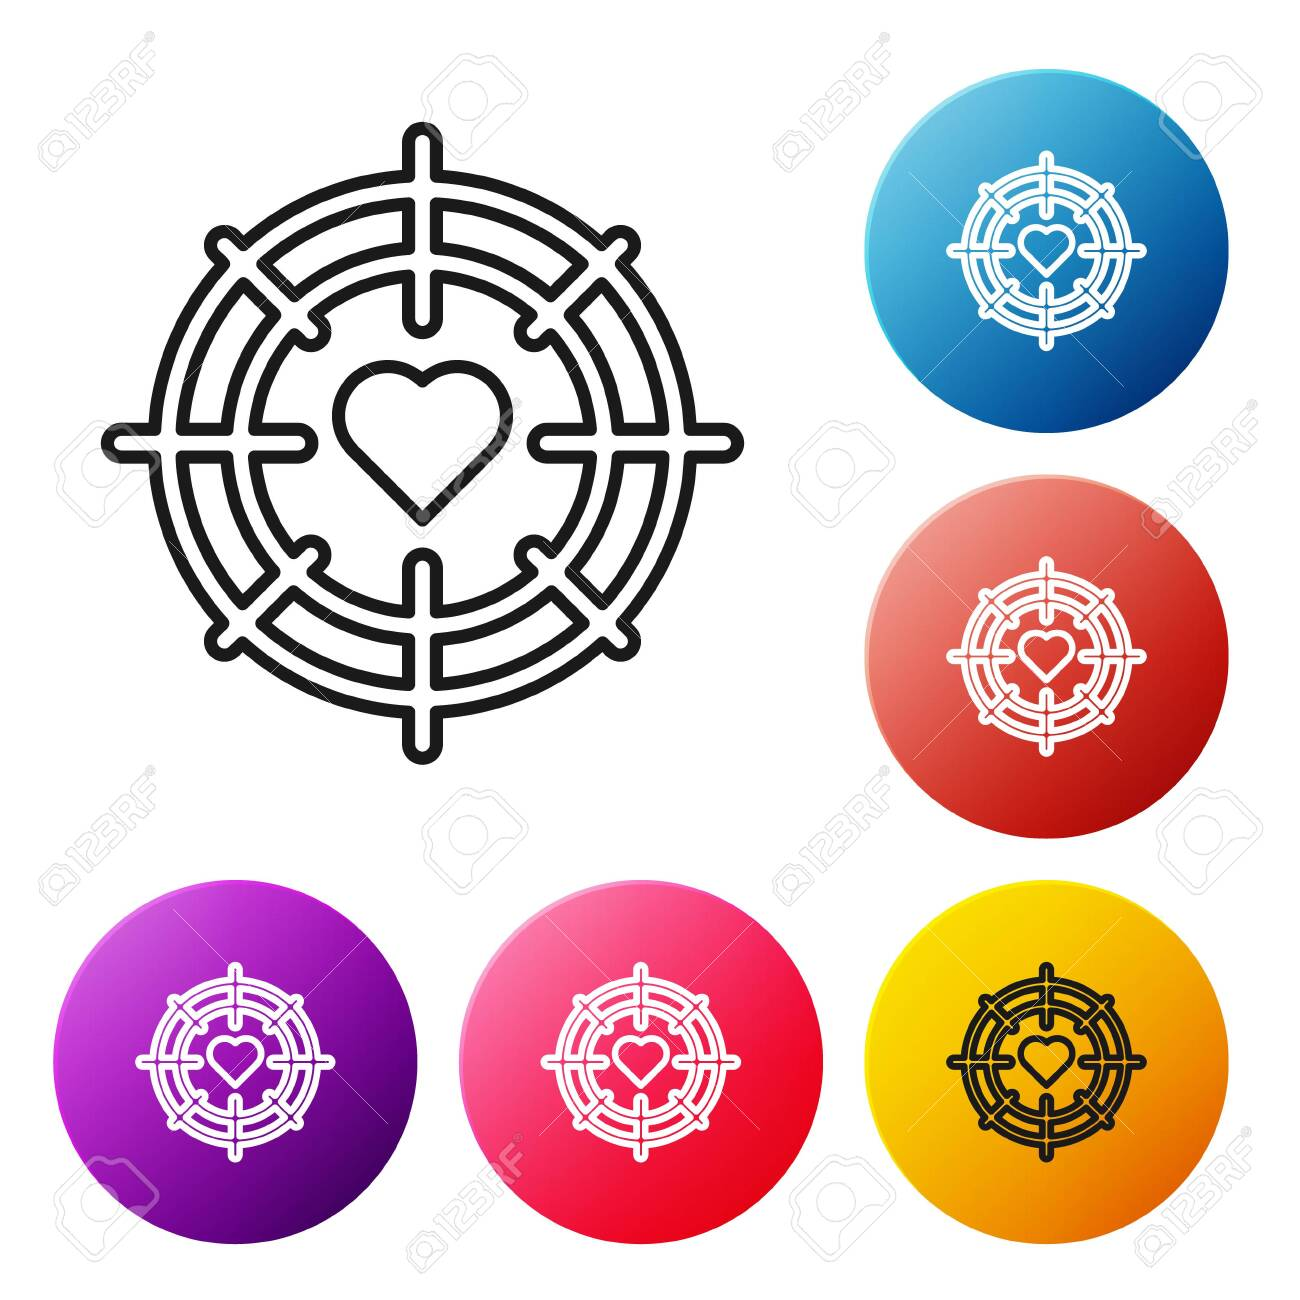 black line heart in the center of darts target aim icon isolated royalty free cliparts vectors and stock illustration image 139550800 123rf com